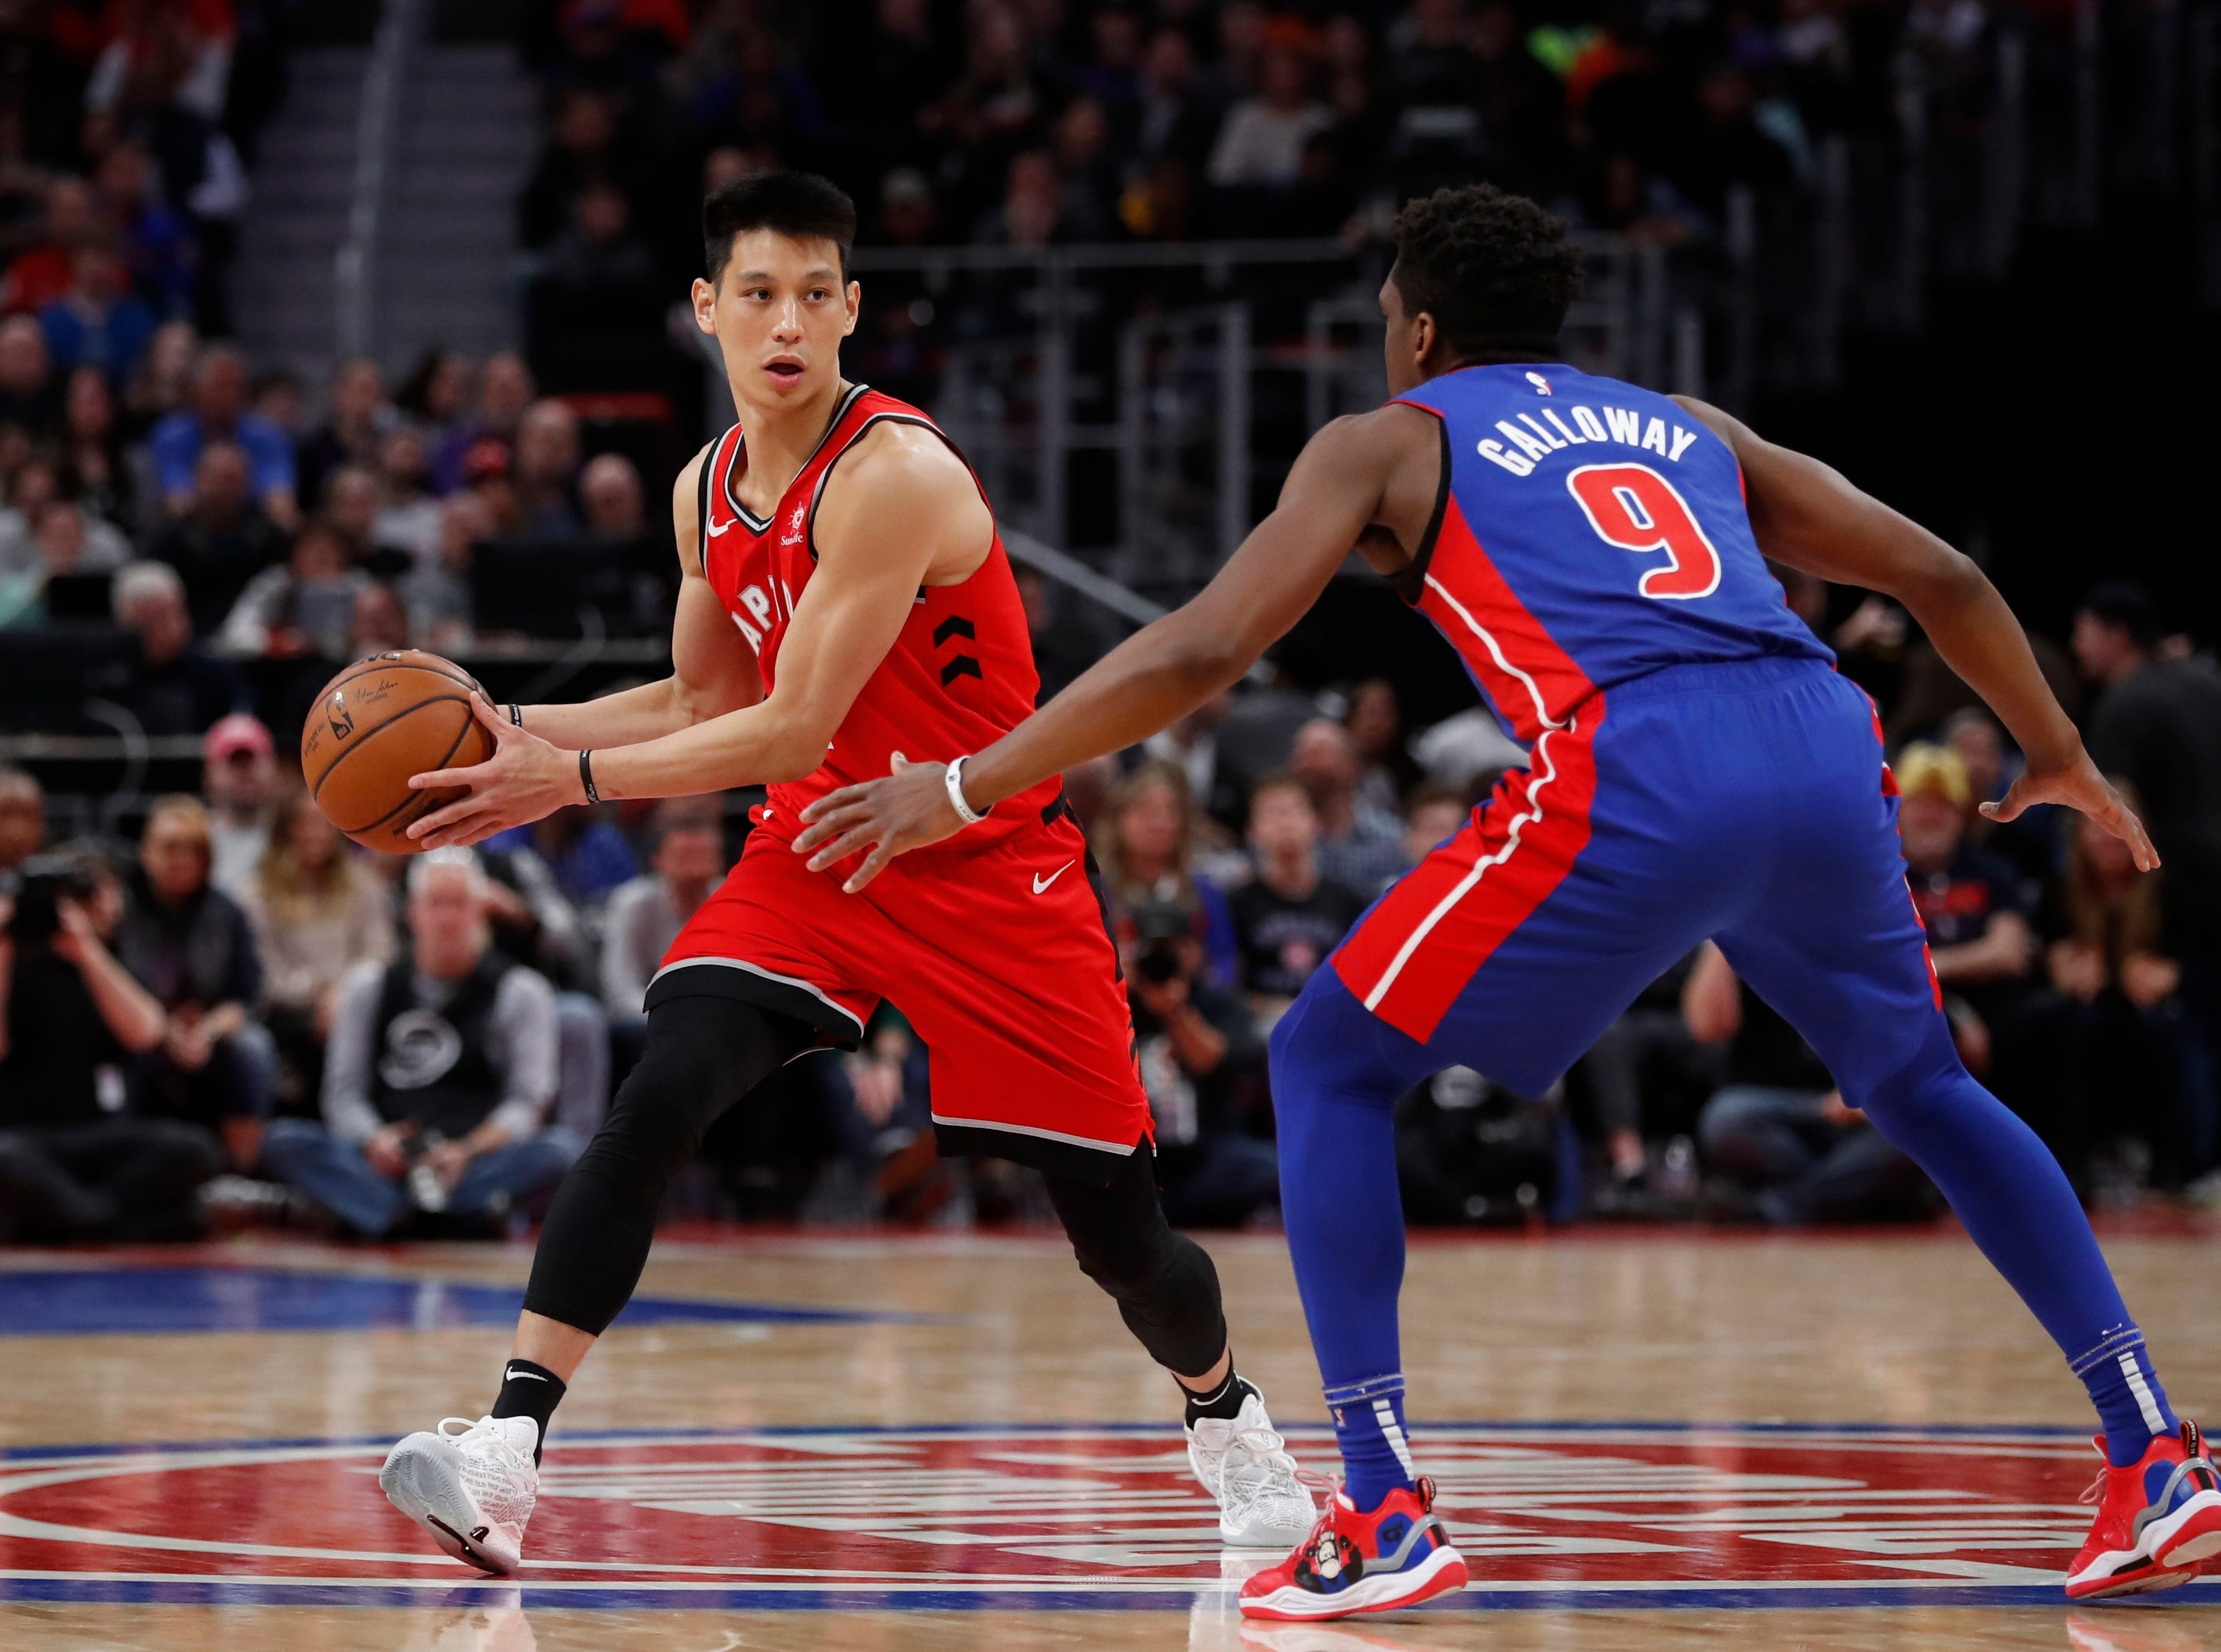 Toronto Raptors guard Jeremy Lin looks to pass around Detroit Pistons guard Langston Galloway (9) during the second half.